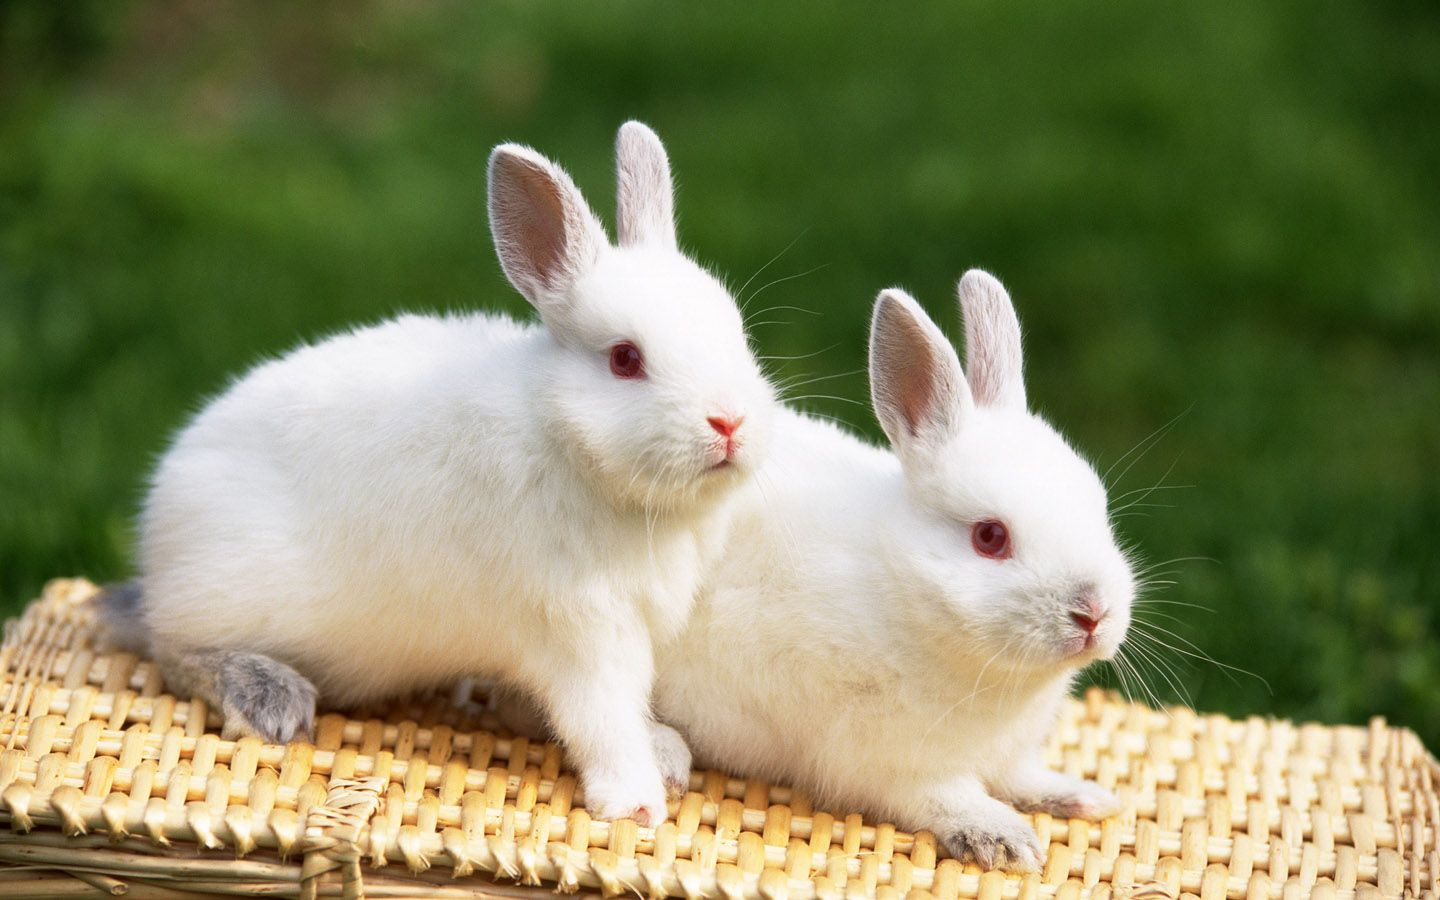 Cute White Baby Rabbit Wallpapers - 1440x900 - 254591